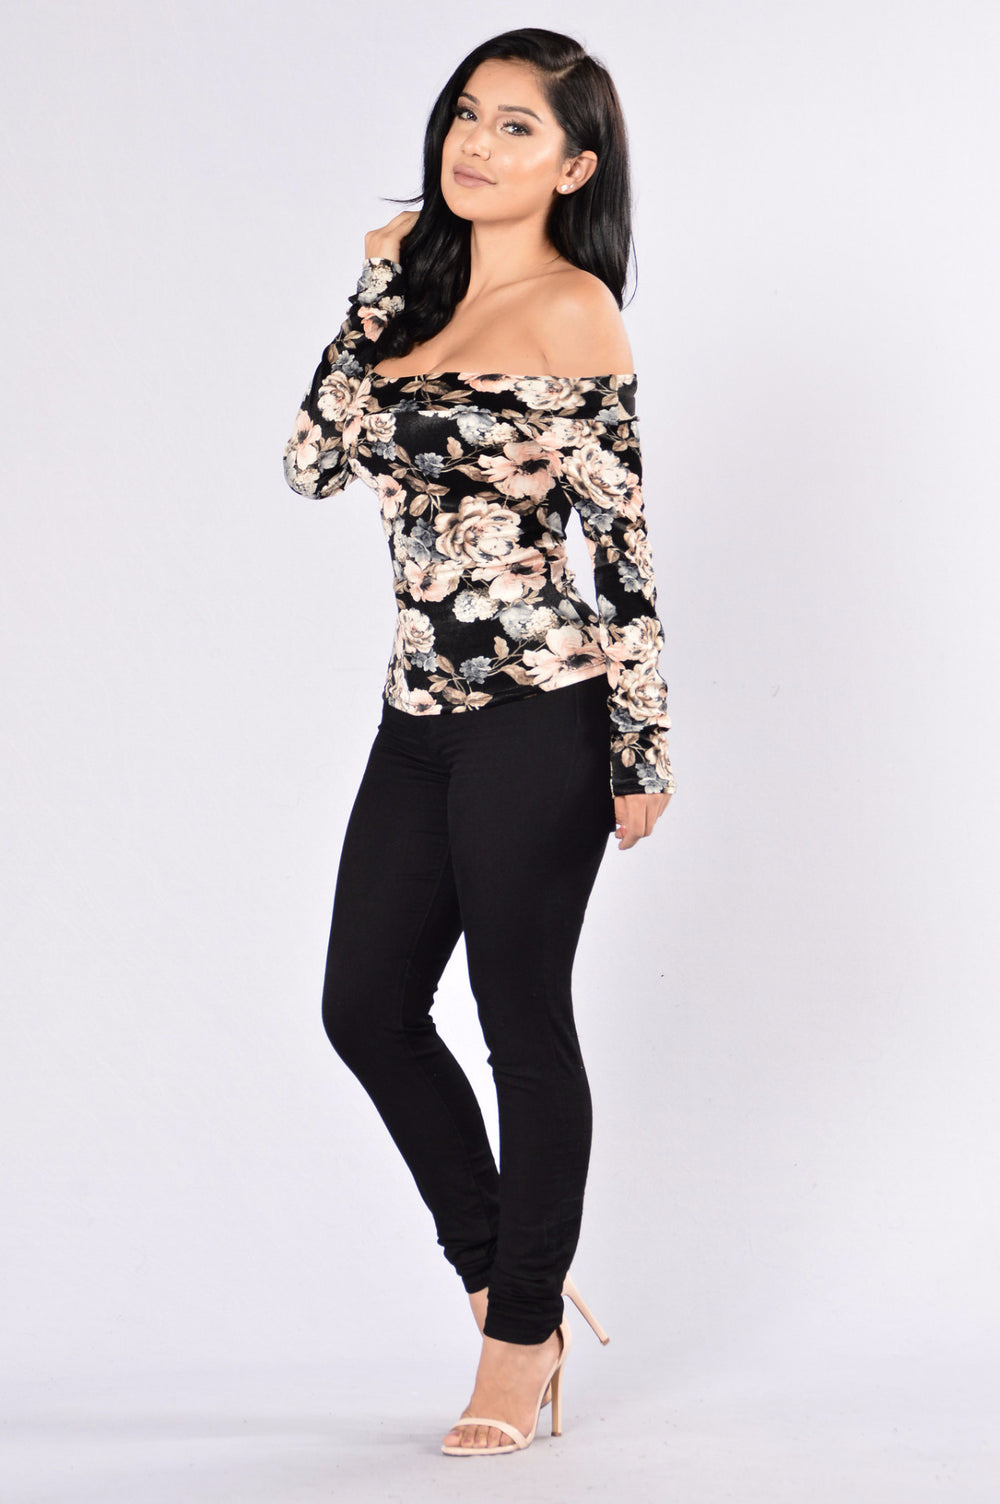 Outlandish Top - Black